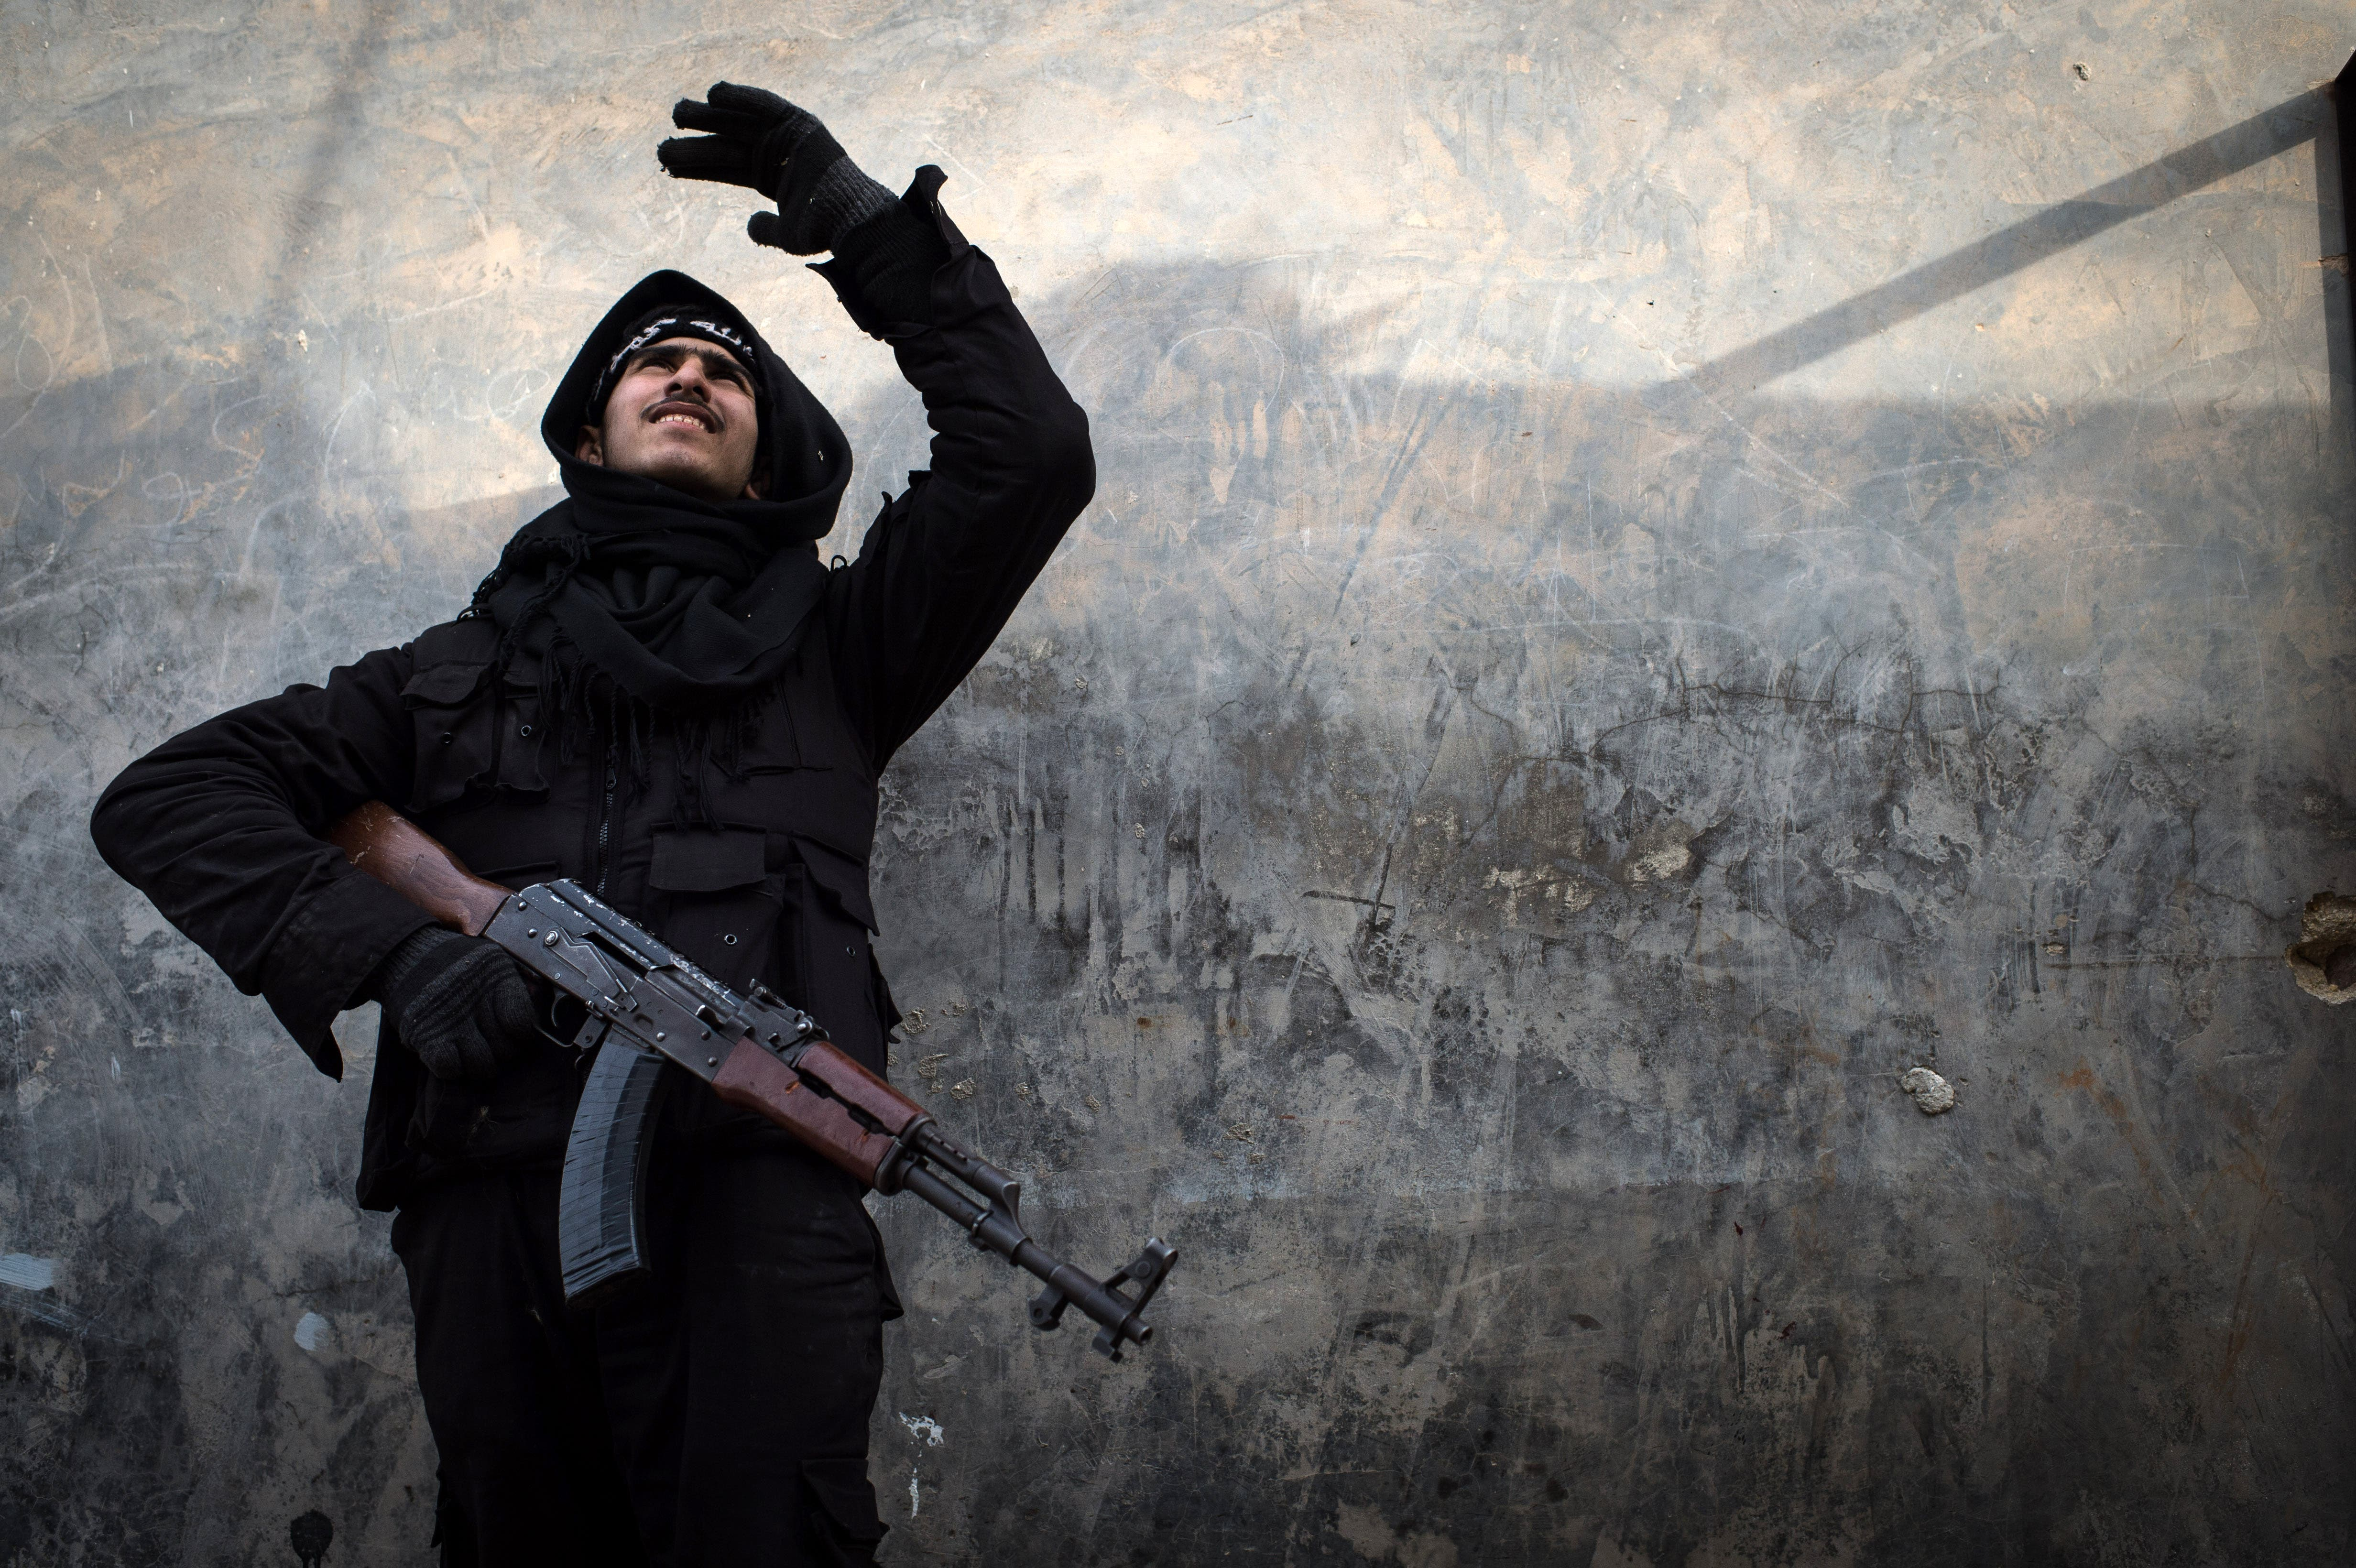 A Rebel fighter points at smoke rising in the city of Aleppo on Friday. UN leader Ban Ki-moon has warned that Syria is in a